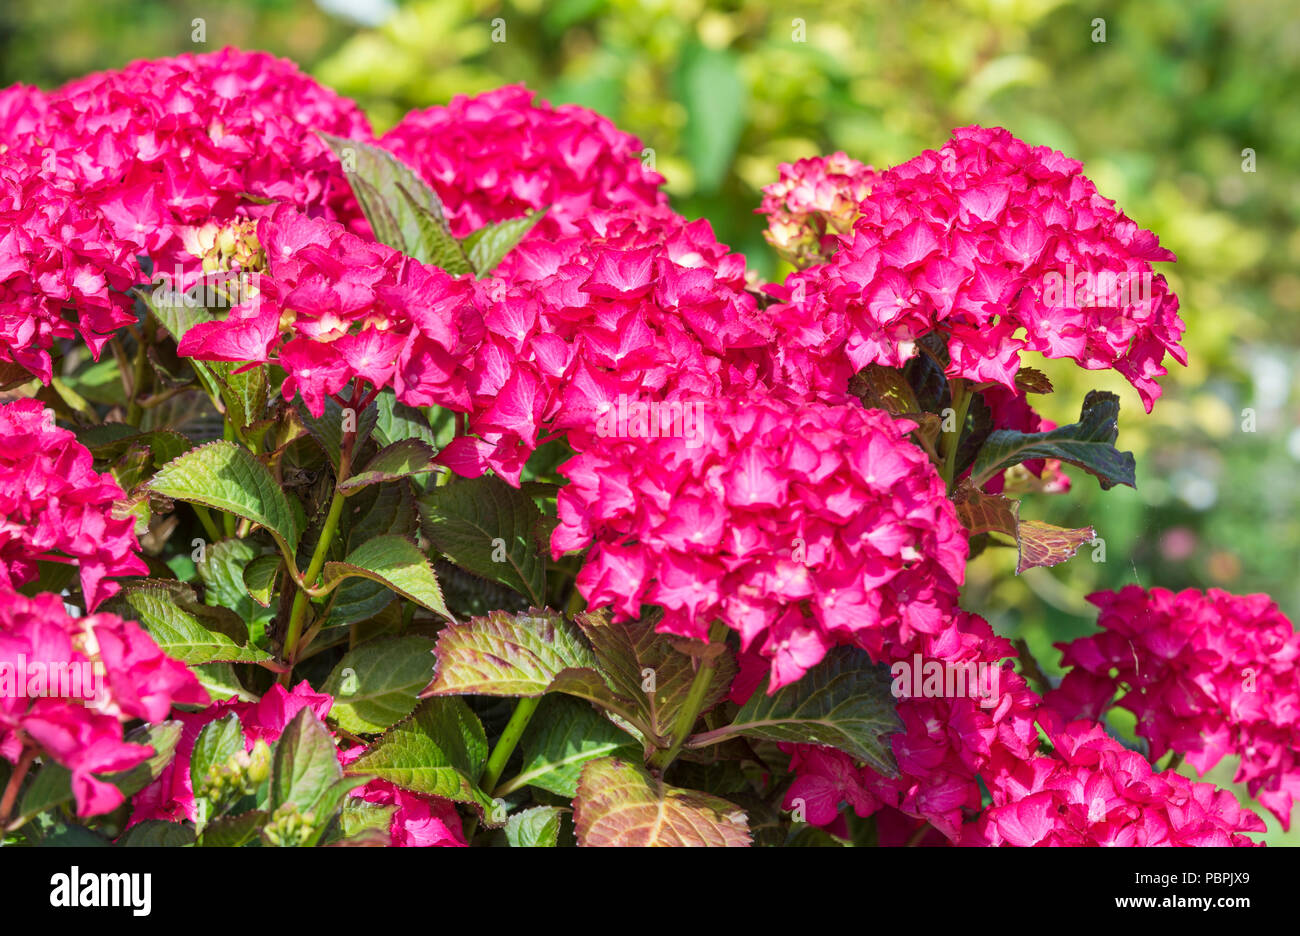 Flowers from a Hydrangea macrophylla 'Selma' (Dutch Ladies Series) Shrub in Summer in West Sussex, England, UK. - Stock Image